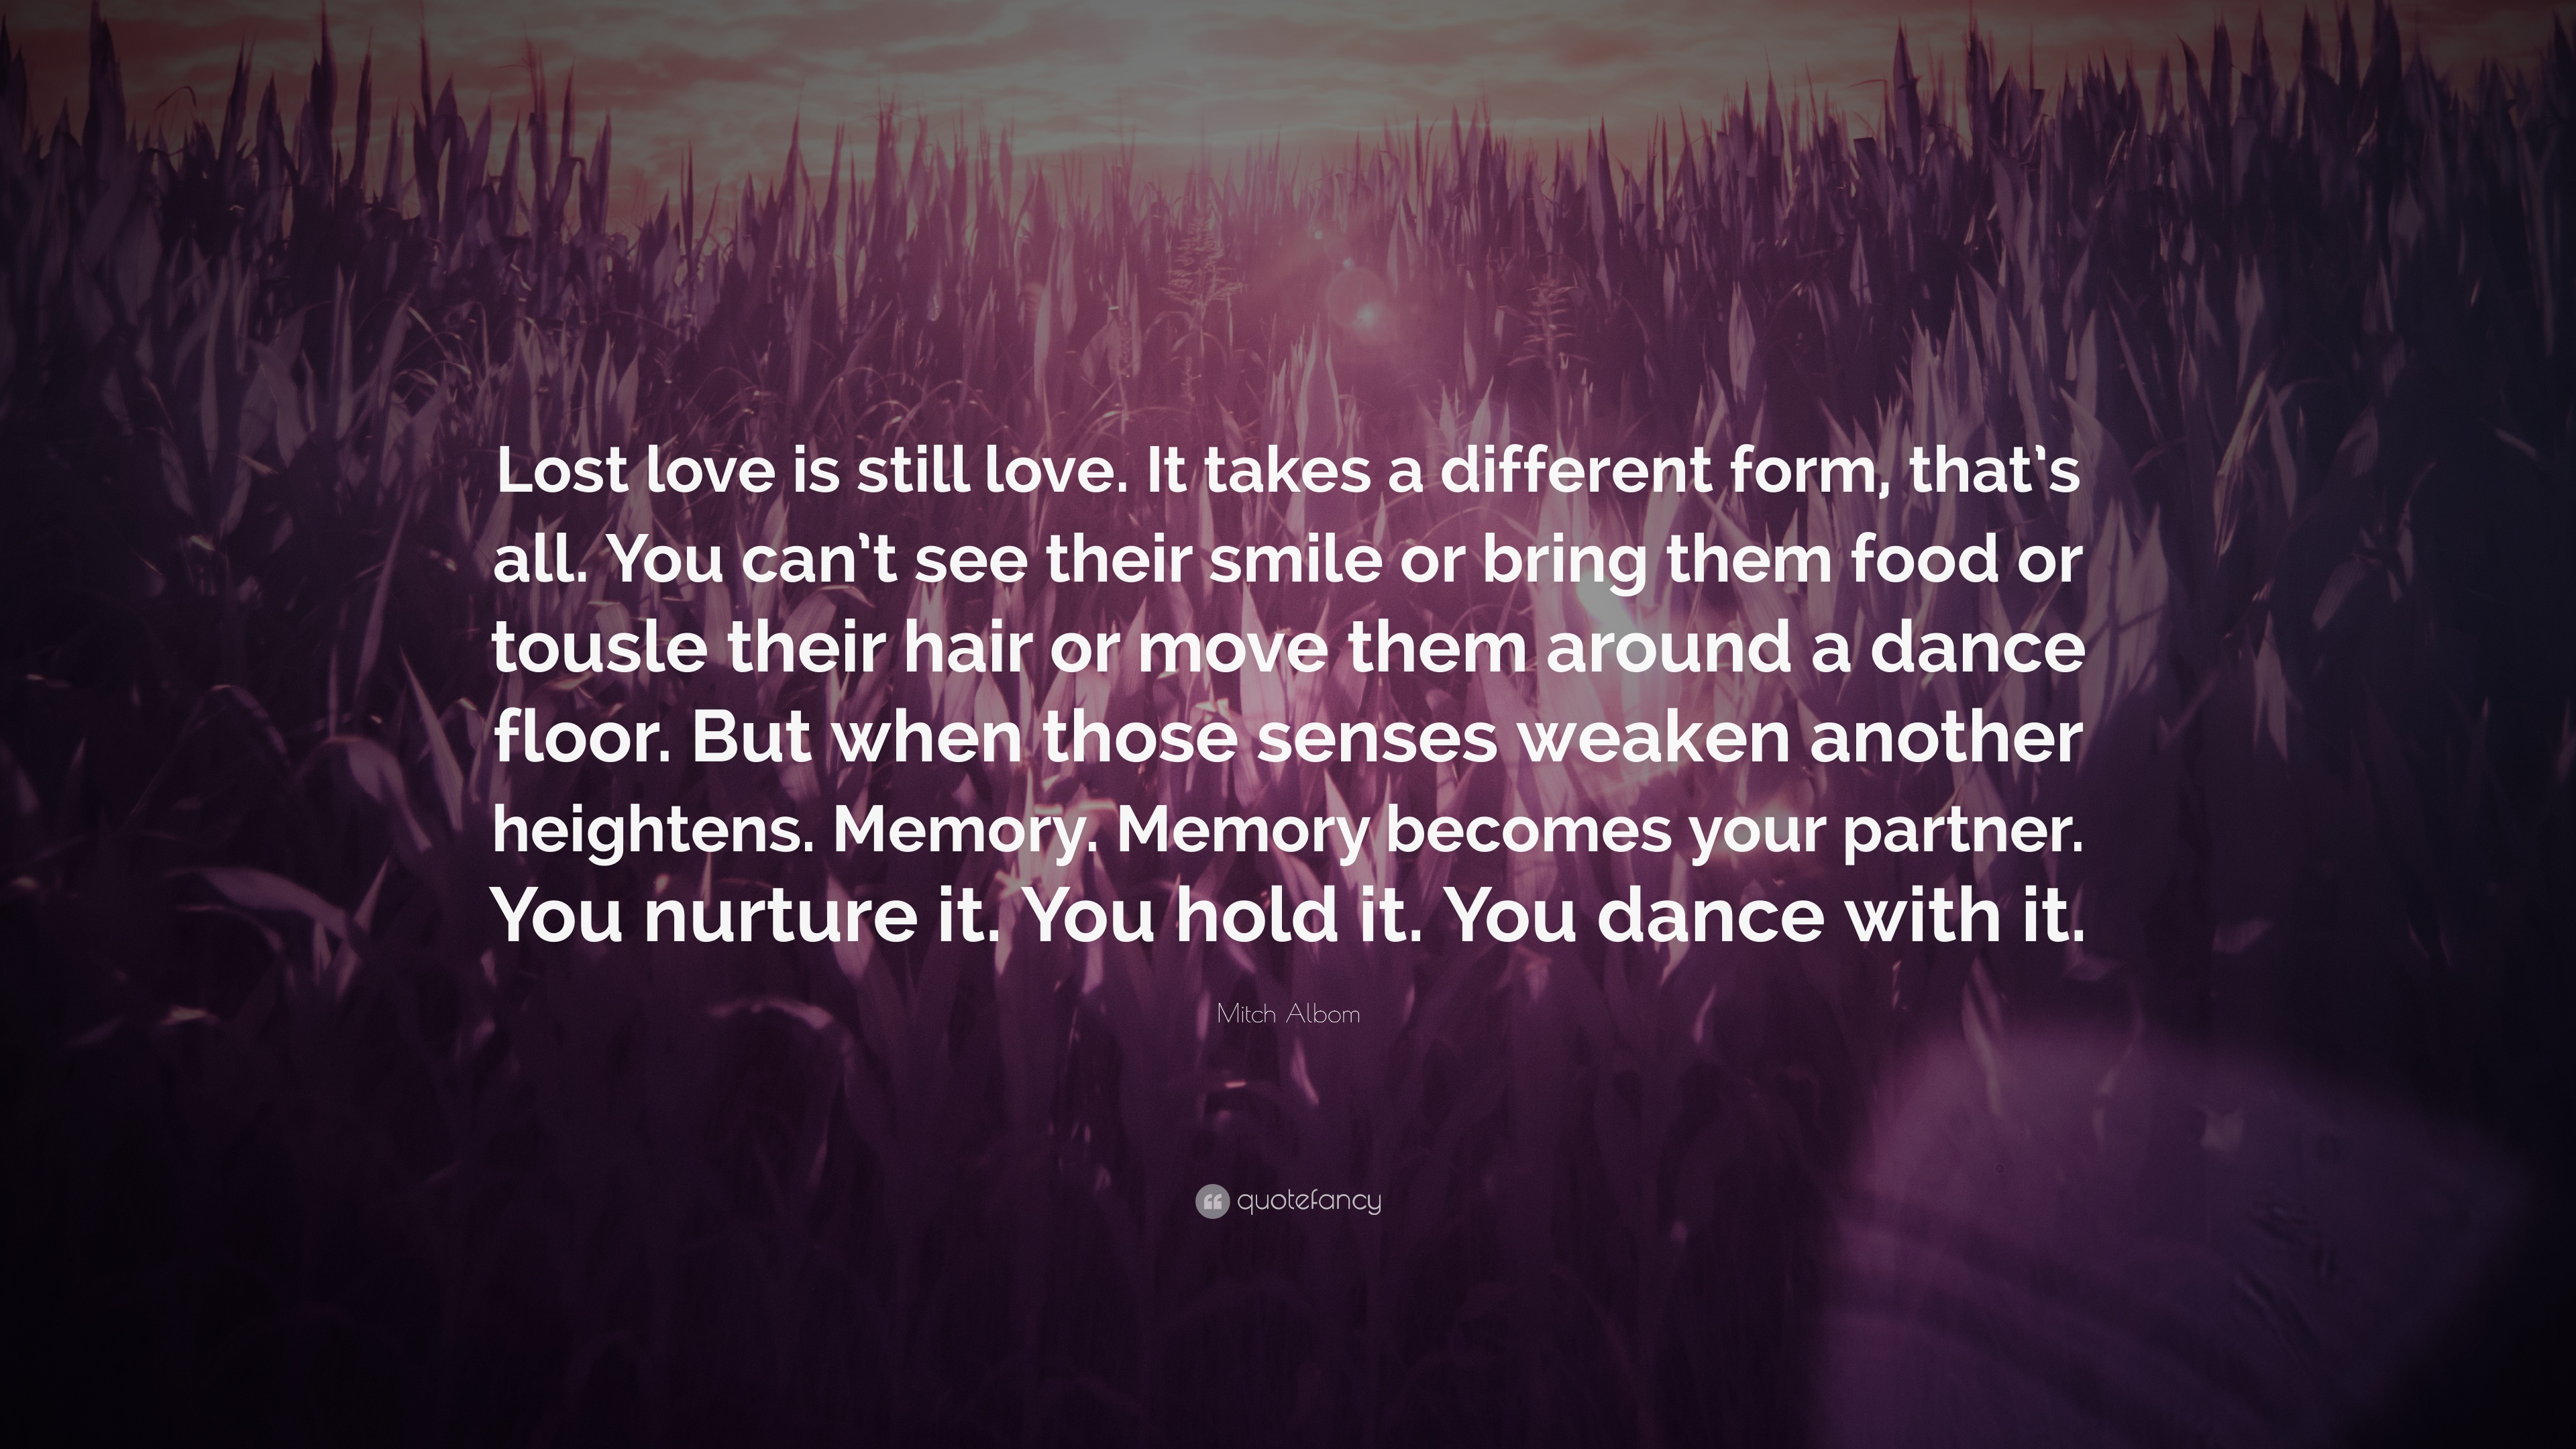 "Mitch Albom Quote ""Lost love is still love It takes a different form"